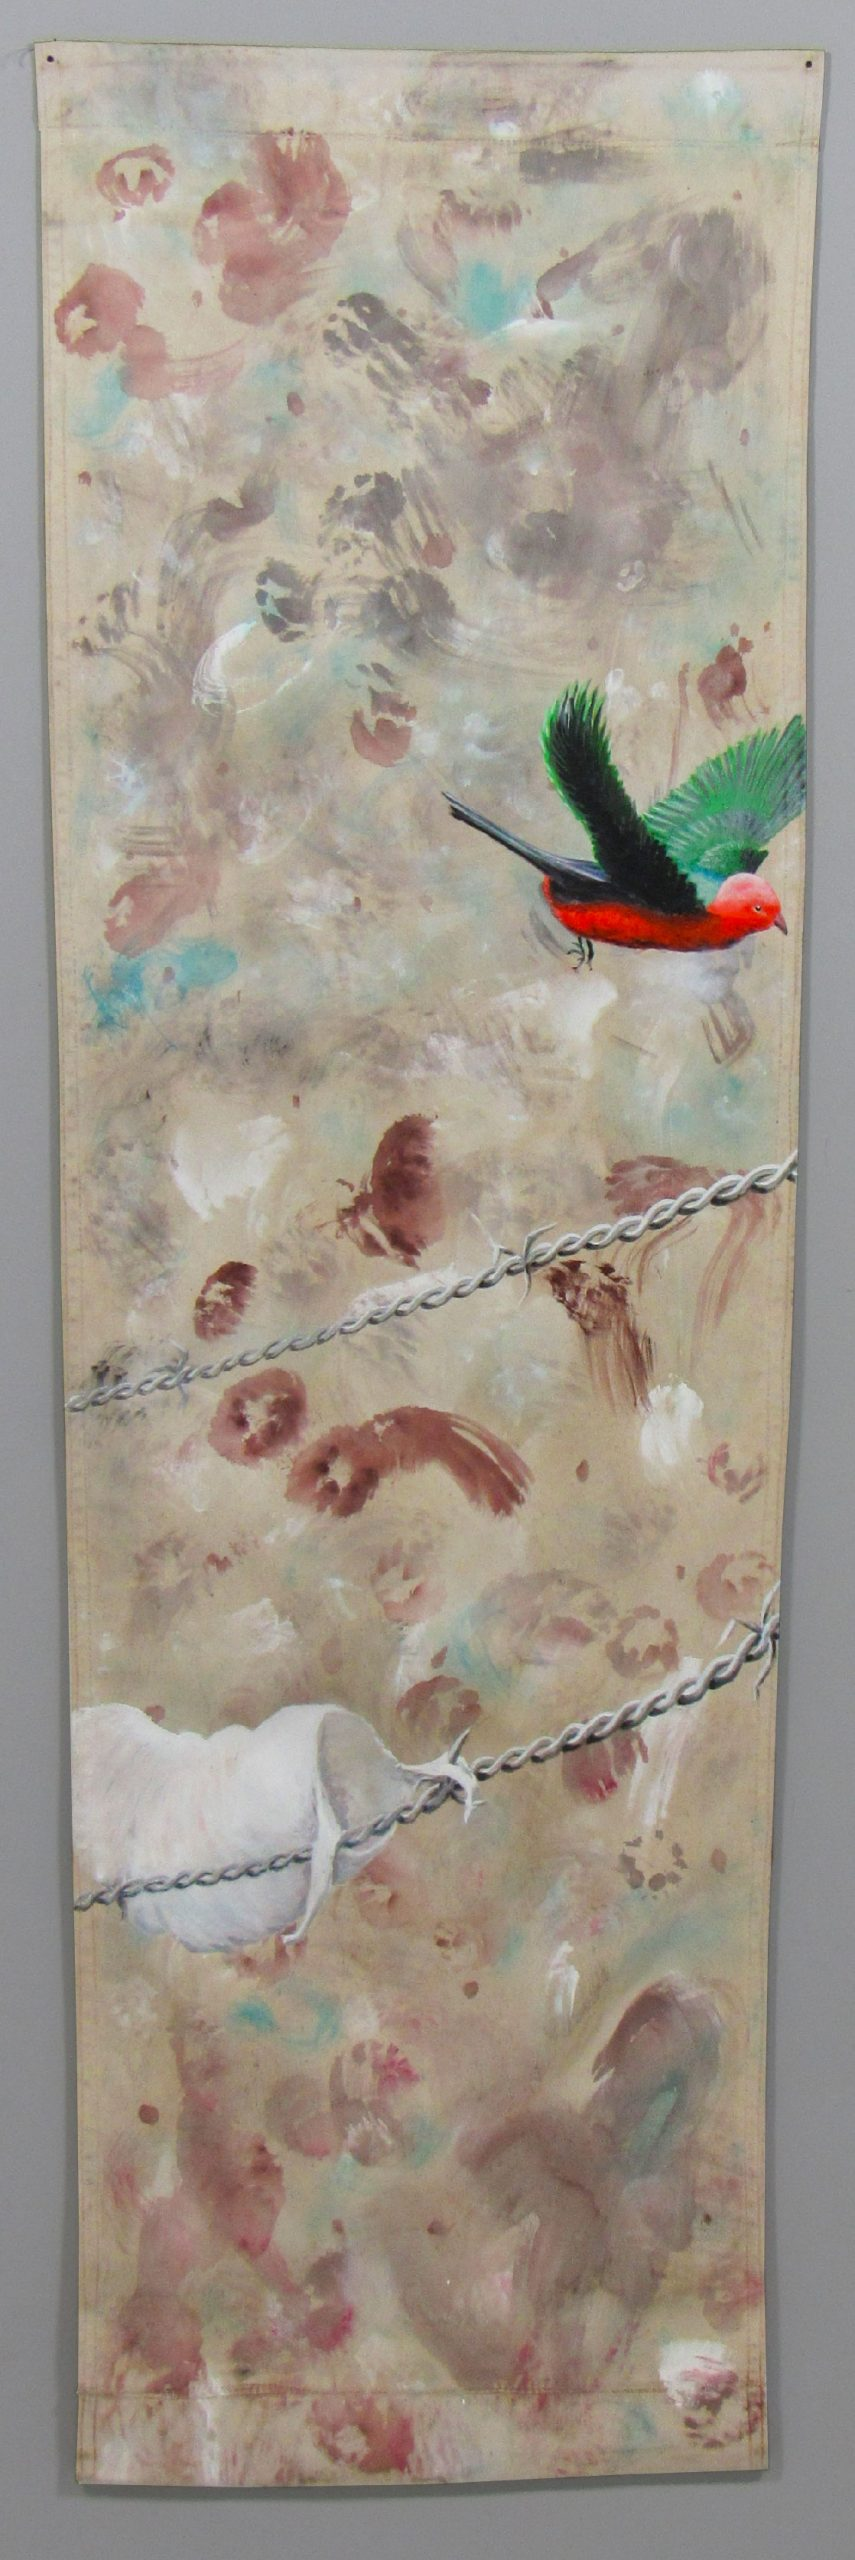 Painting bird flying over barbed wire by visual artist Guillermo del Valle